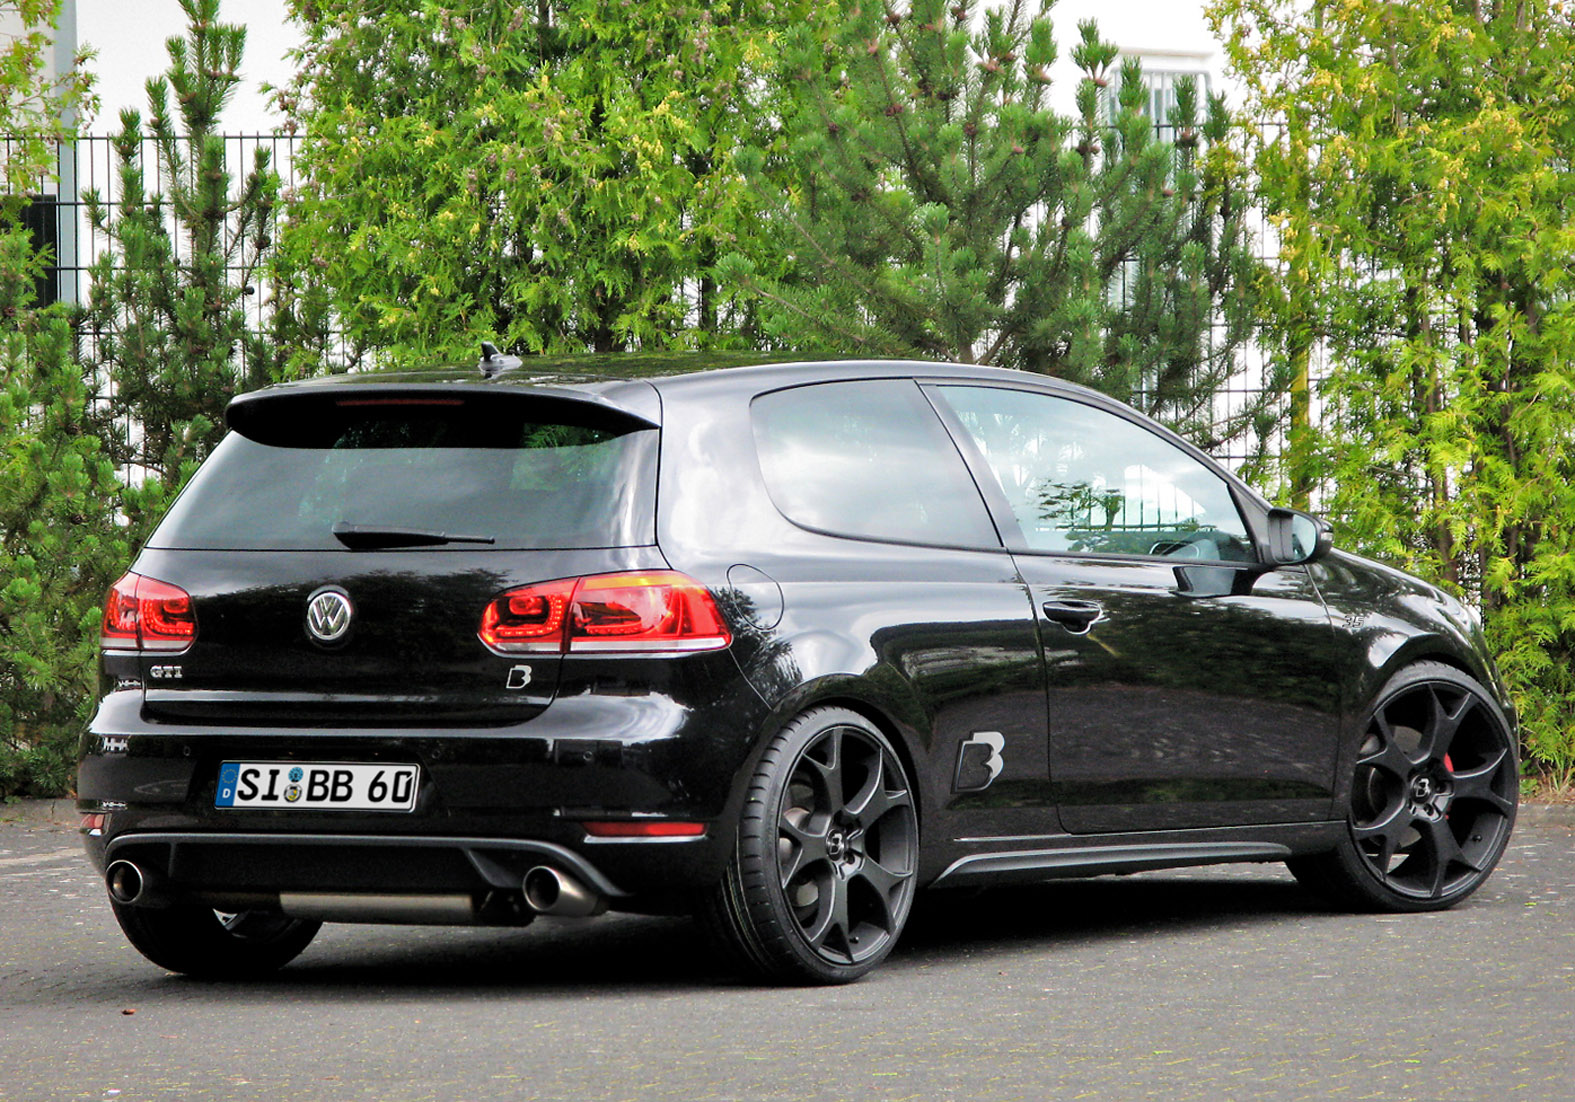 b b vw golf gti edition 35. Black Bedroom Furniture Sets. Home Design Ideas